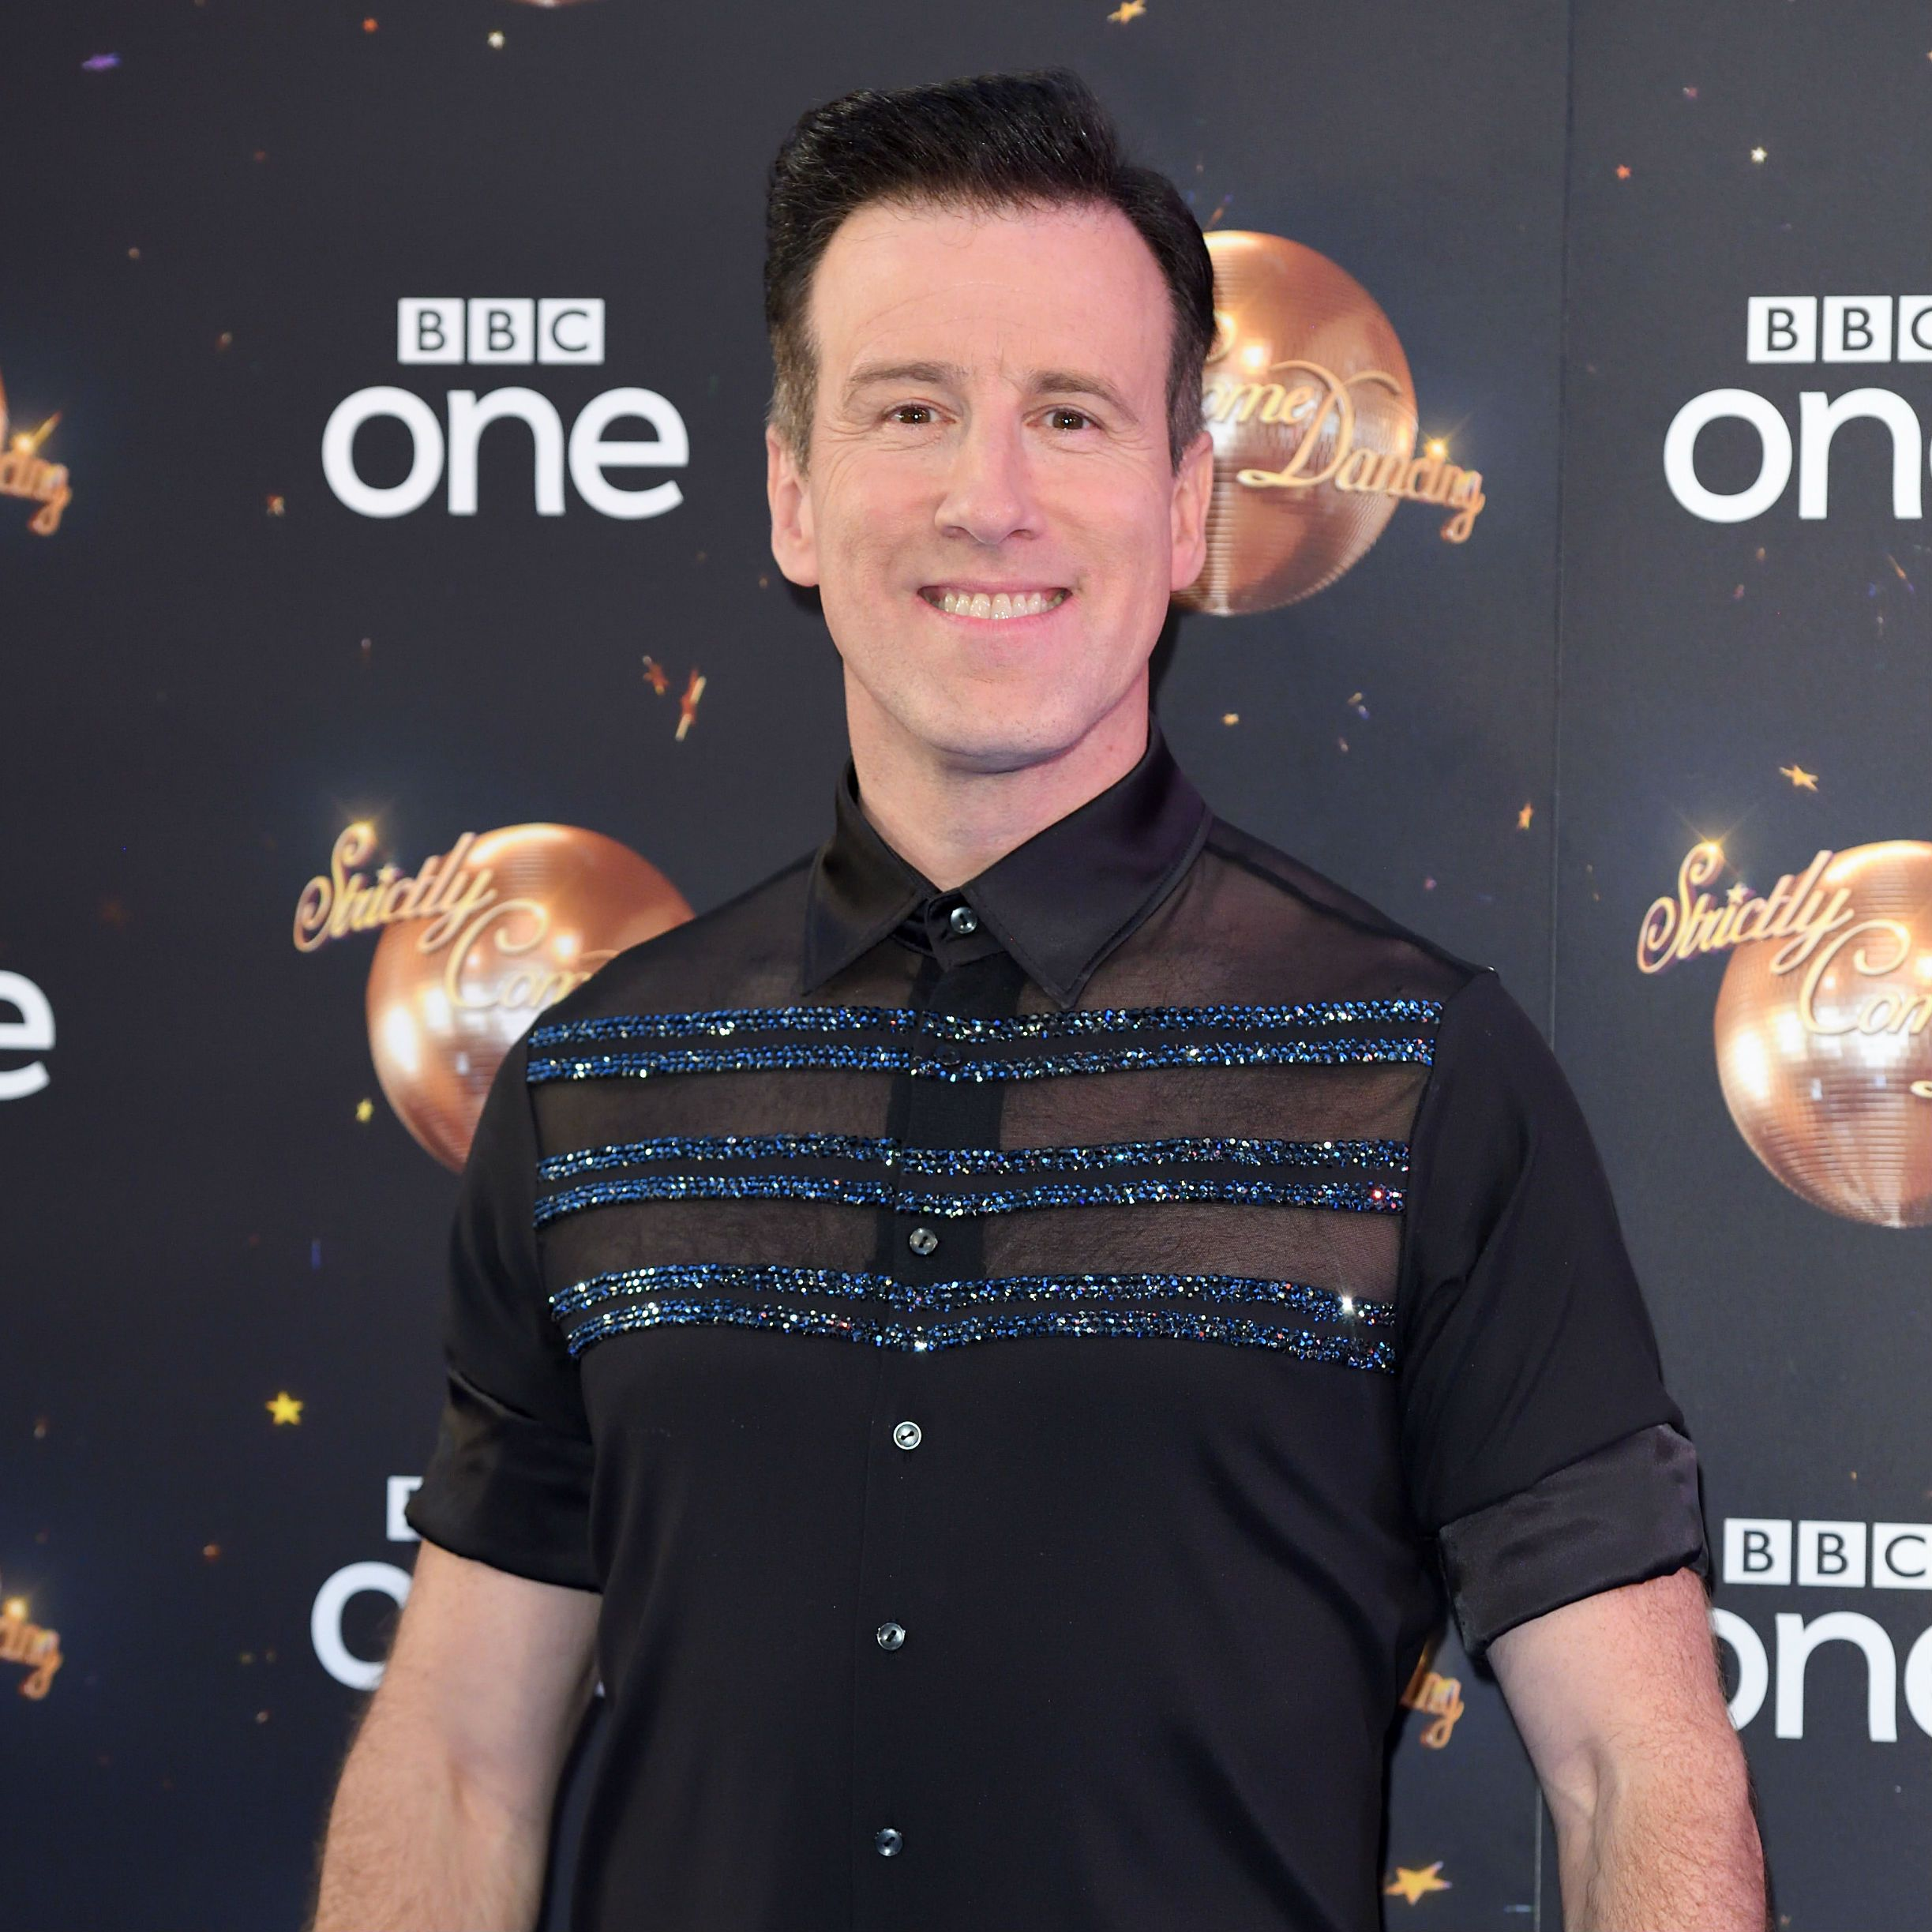 Strictly's Anton Du Beke explains how the show has changed over the years